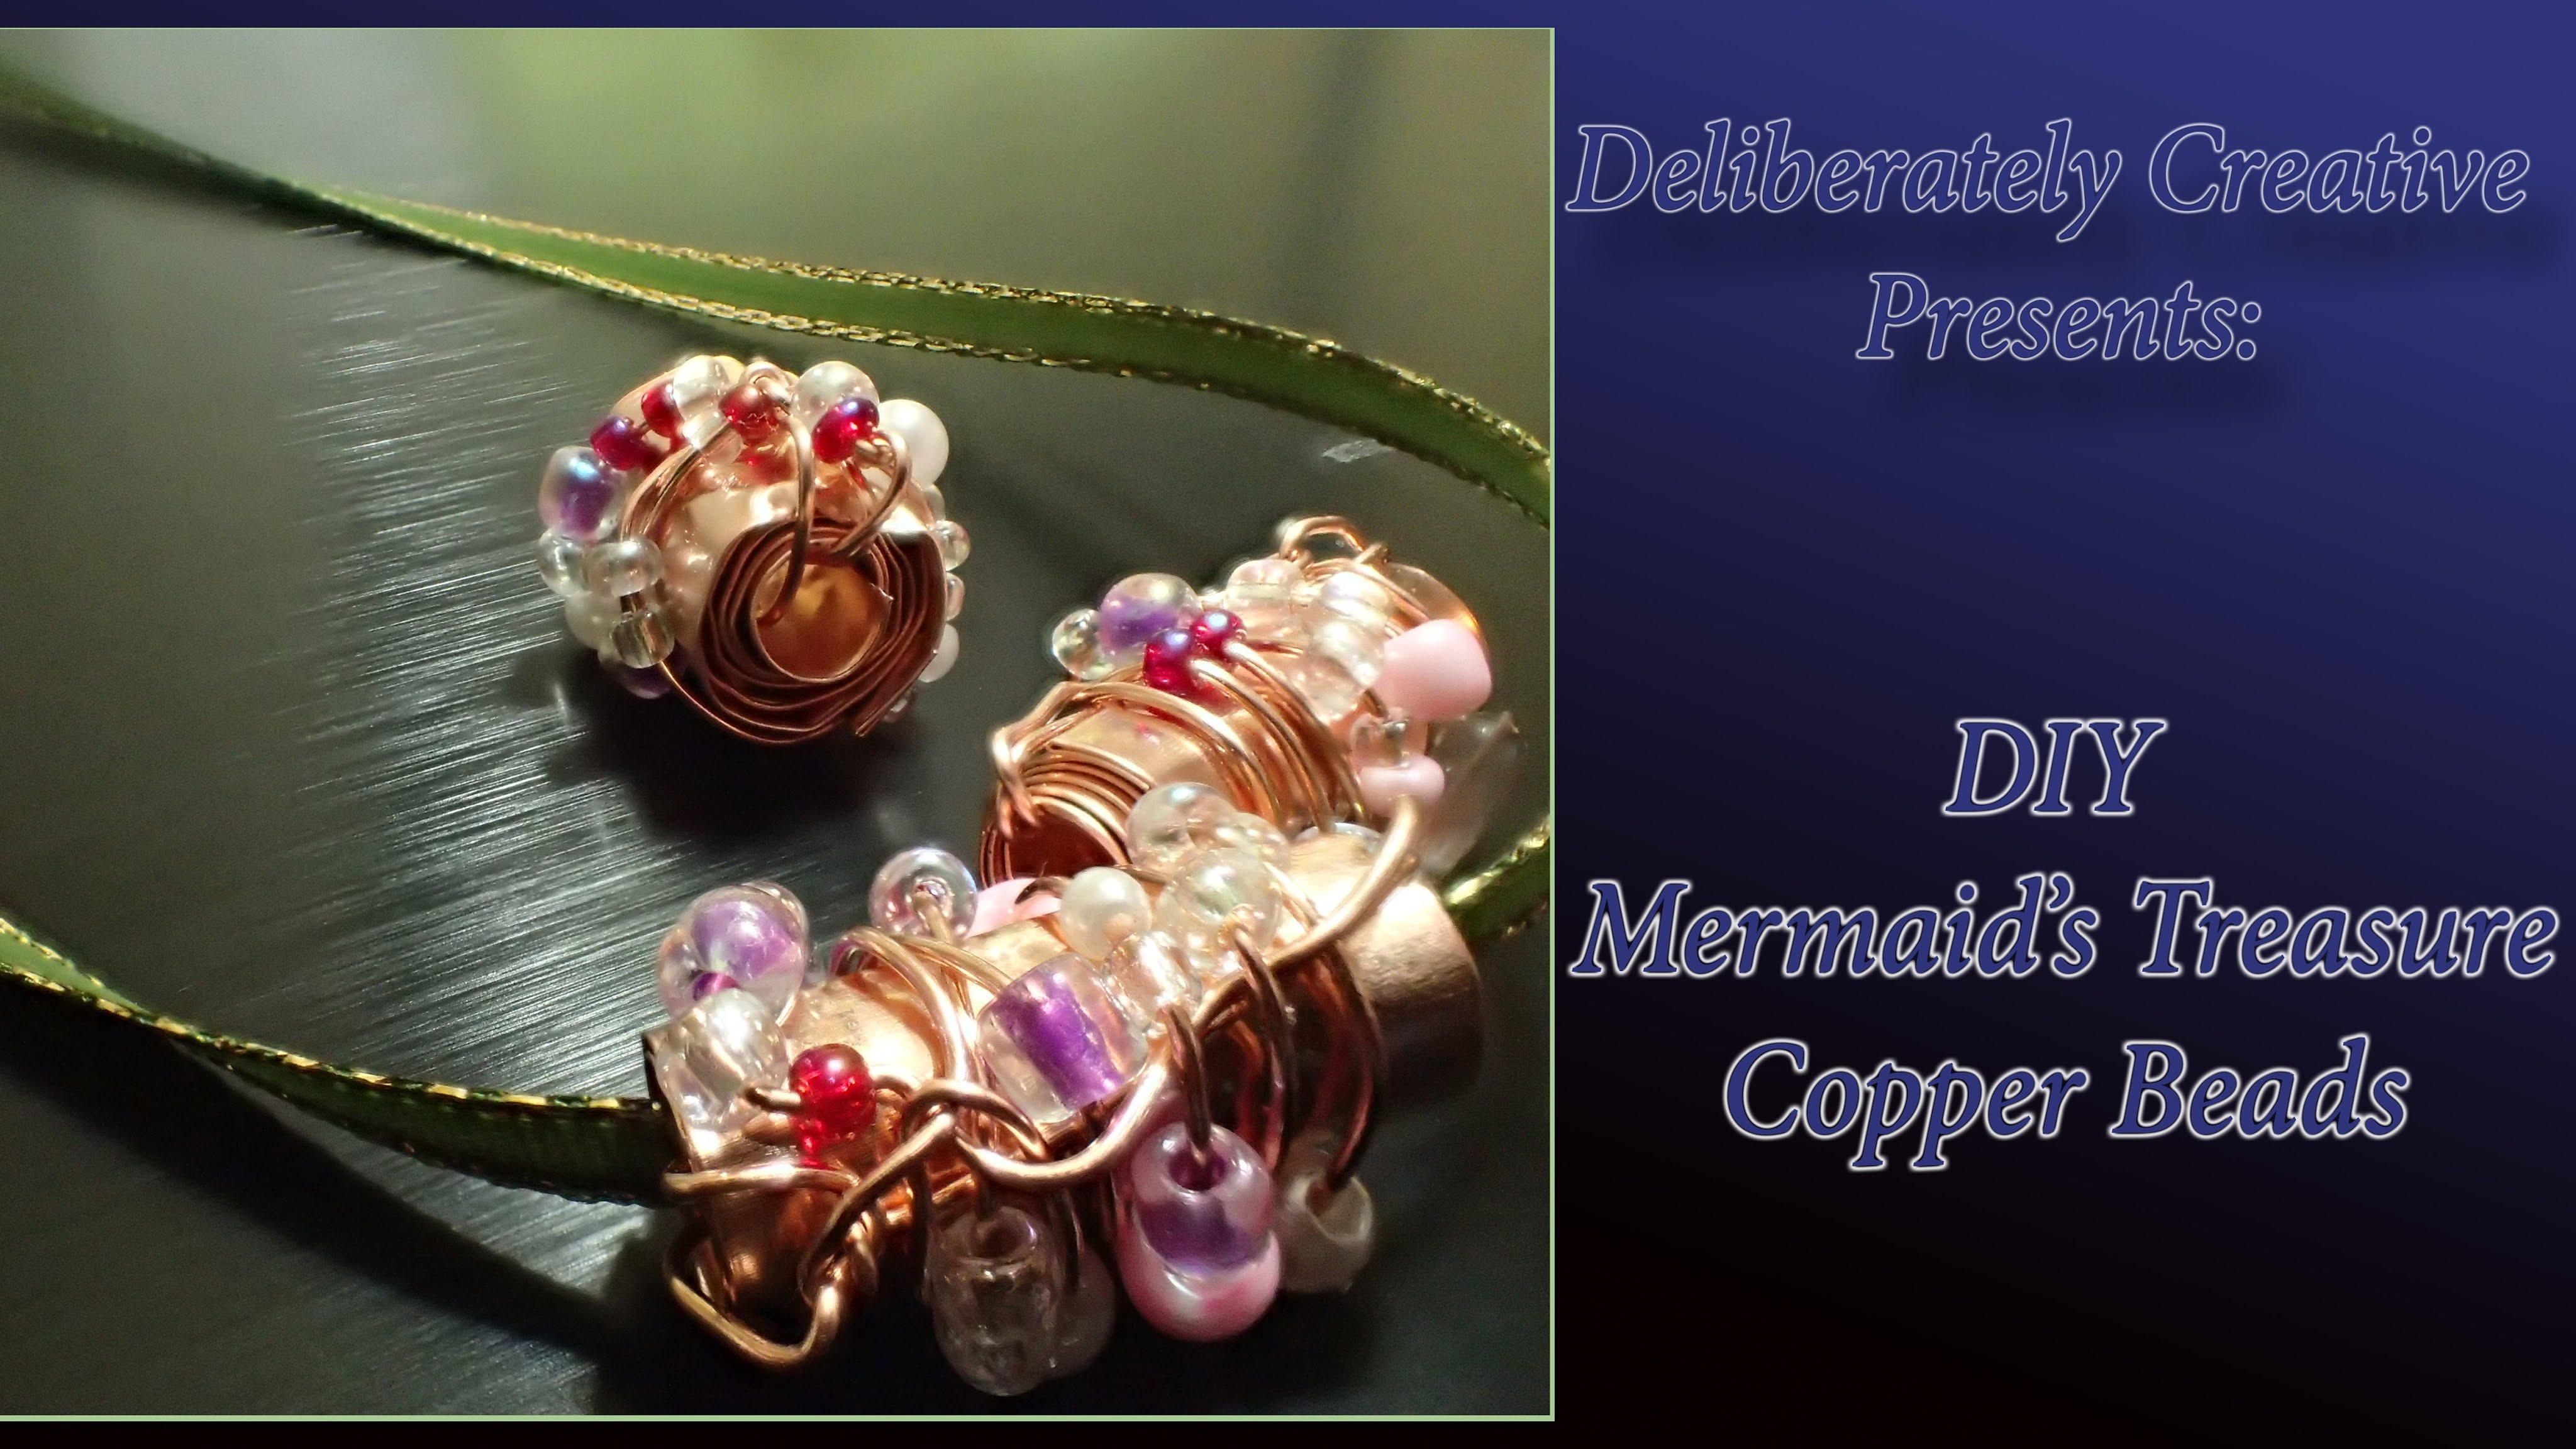 Tutorial How to Make Copper Mermaid's Treasure Bead, Fun and Easy!